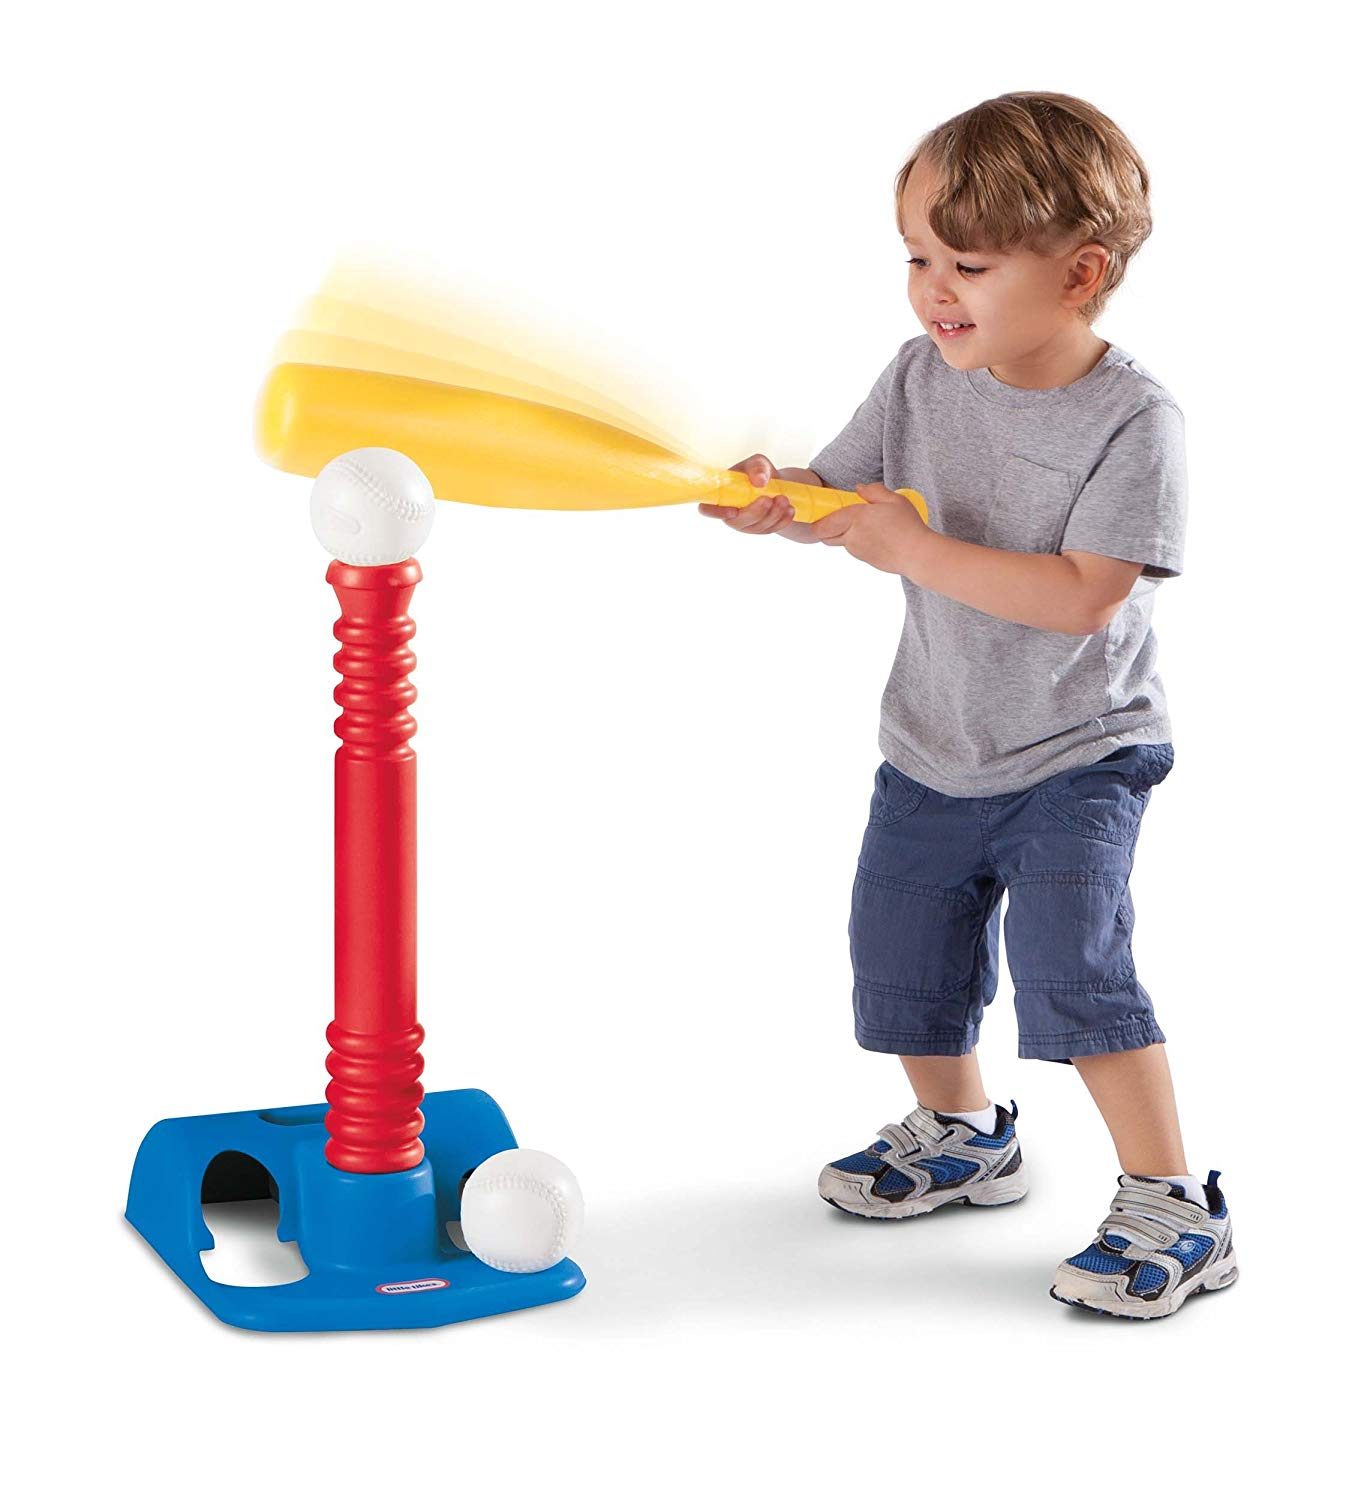 TotSports T-Ball Set, Red, Make baseball a rewarding game for beginning batters with this kids t ball set By Little Tikes